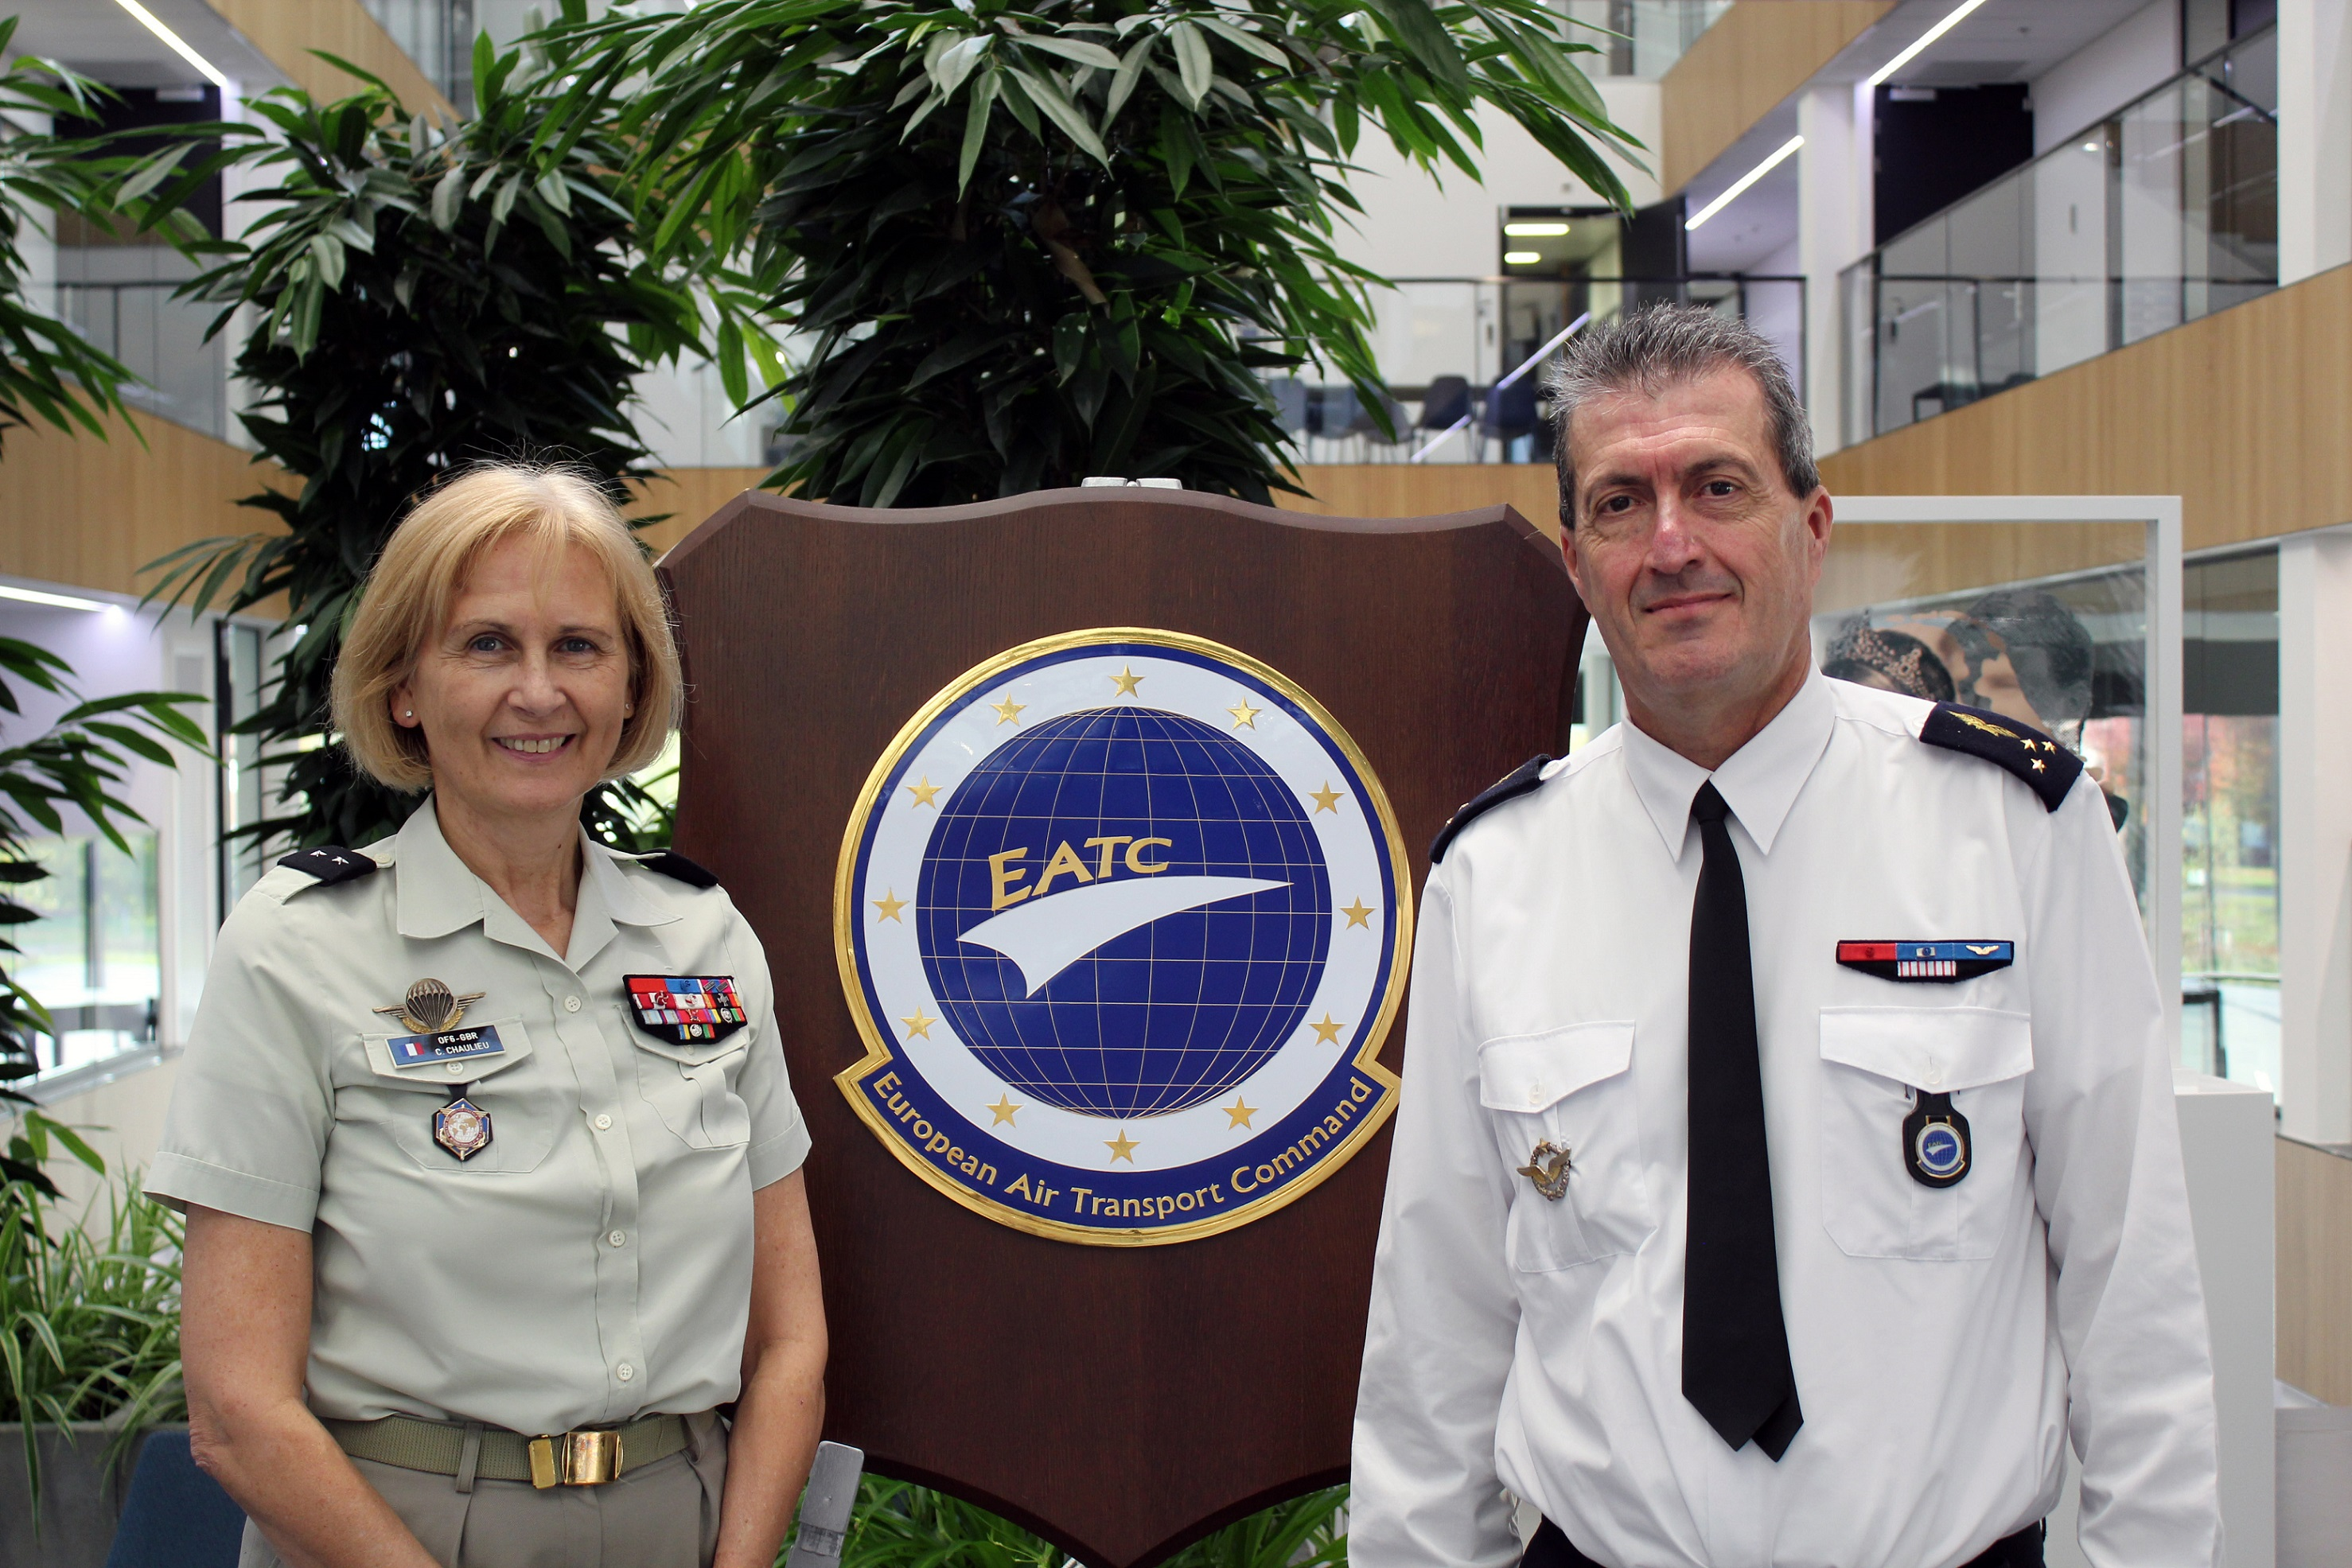 The French Deputy Military Representative to the EUMC meets the Commander EATC